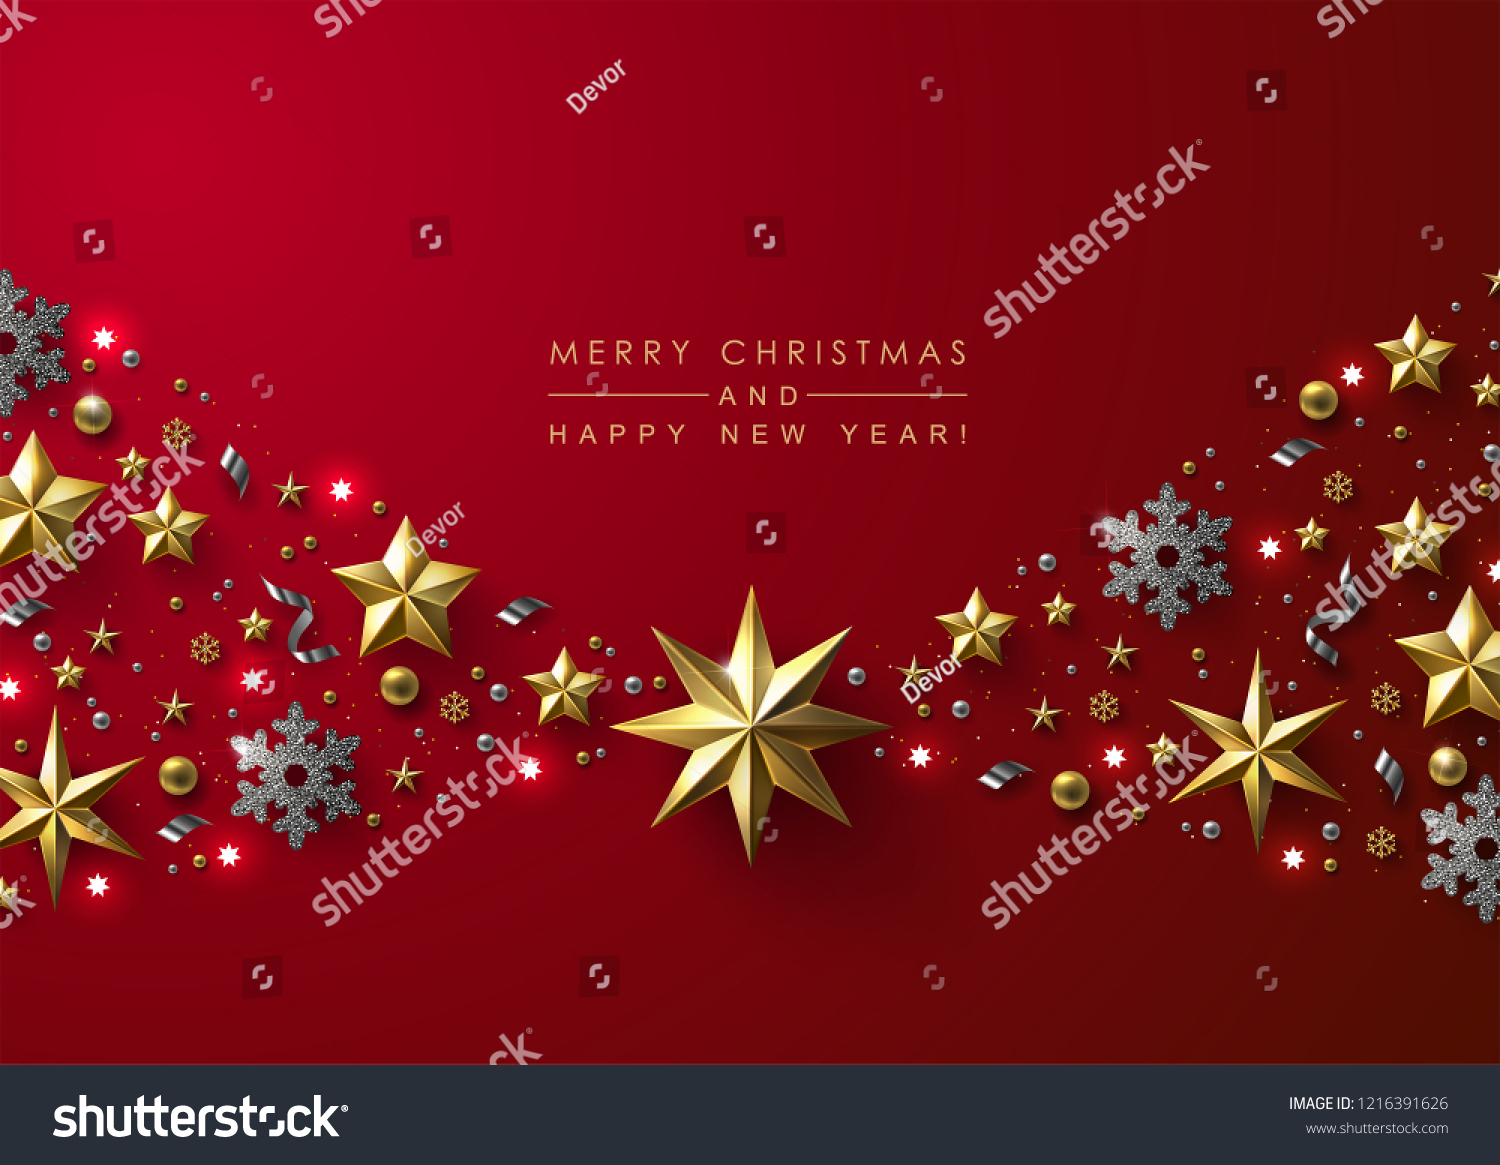 Red Christmas Background with Border made of Cutout Gold Foil Stars and Silver Snowflakes. Chic Christmas Greeting Card. #1216391626